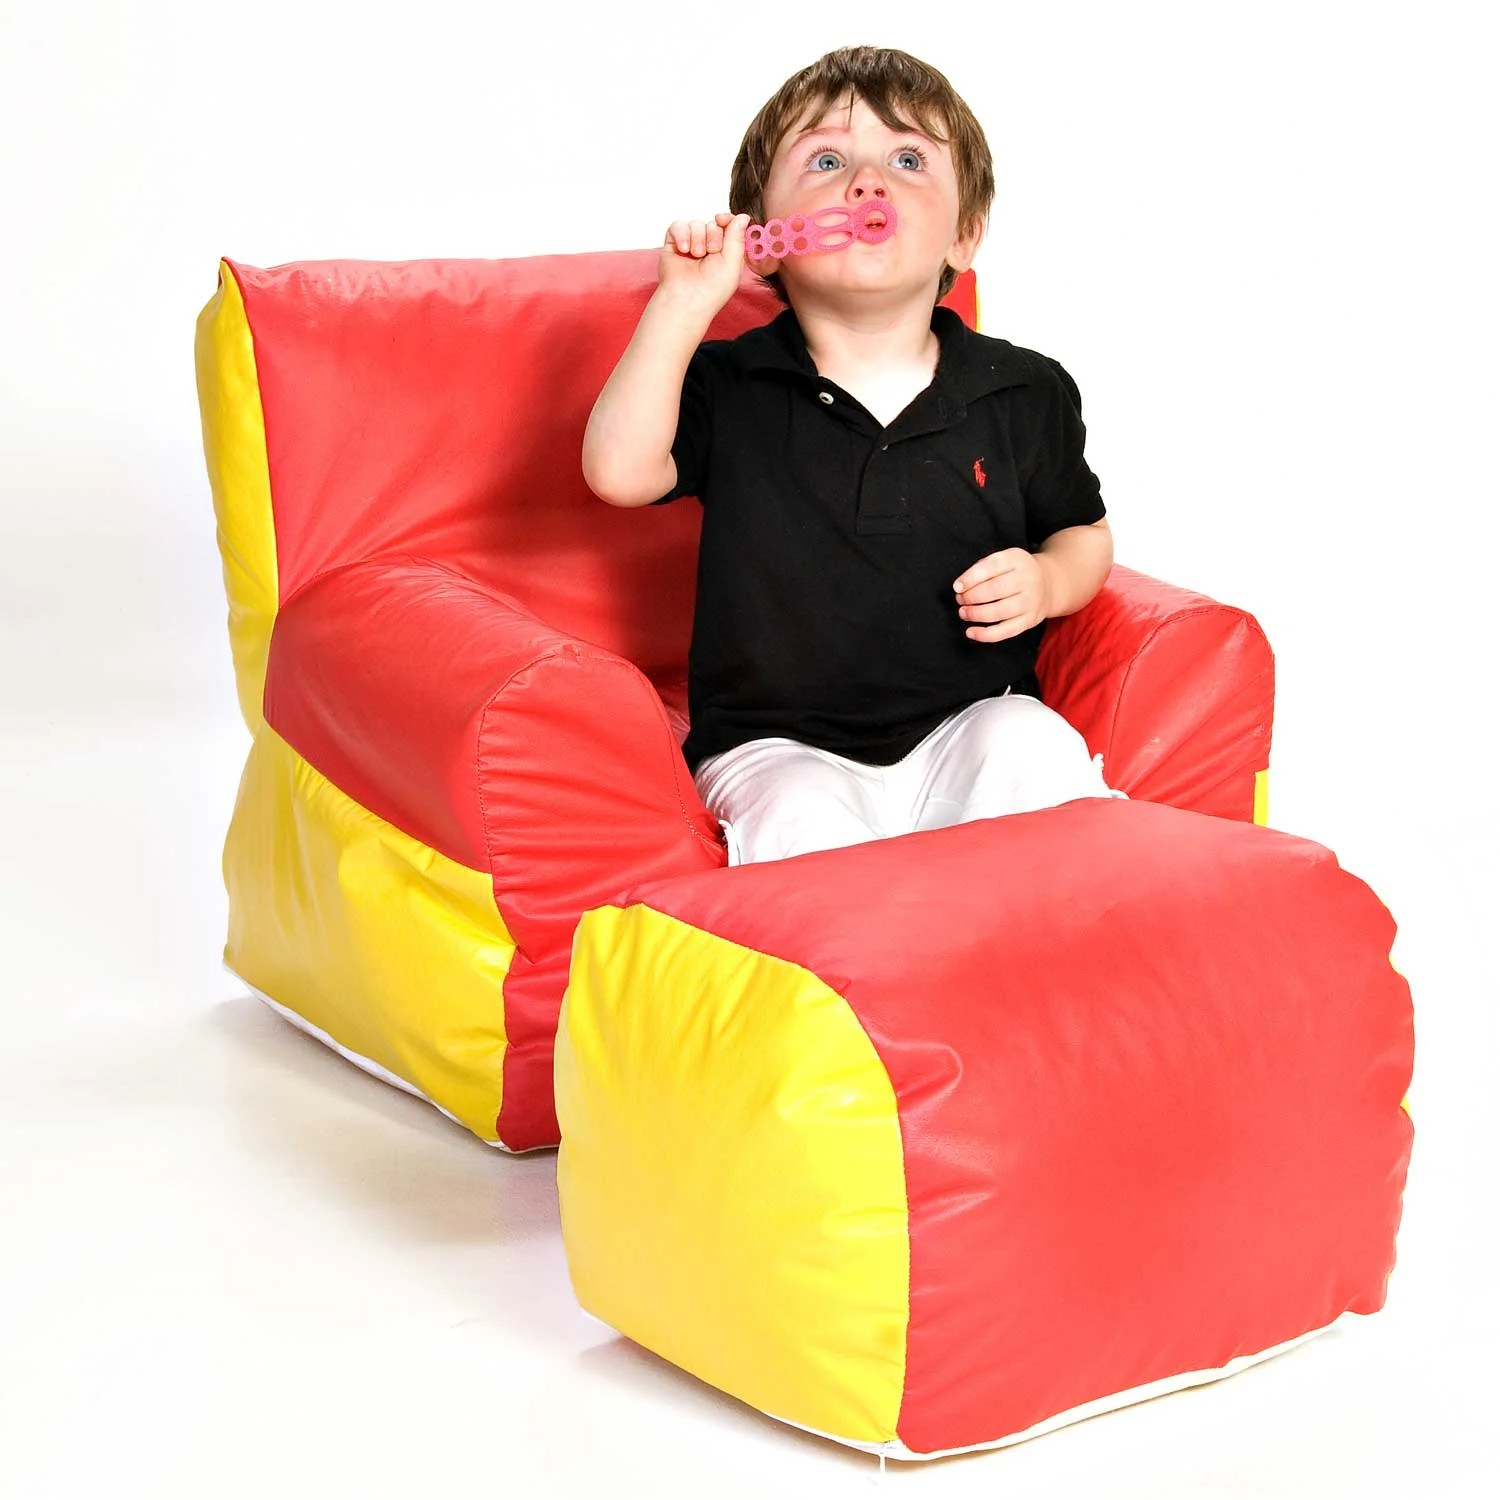 soft toddler chairs dollar tree bunny chair covers foamnasium e boy kids and ottoman reviews